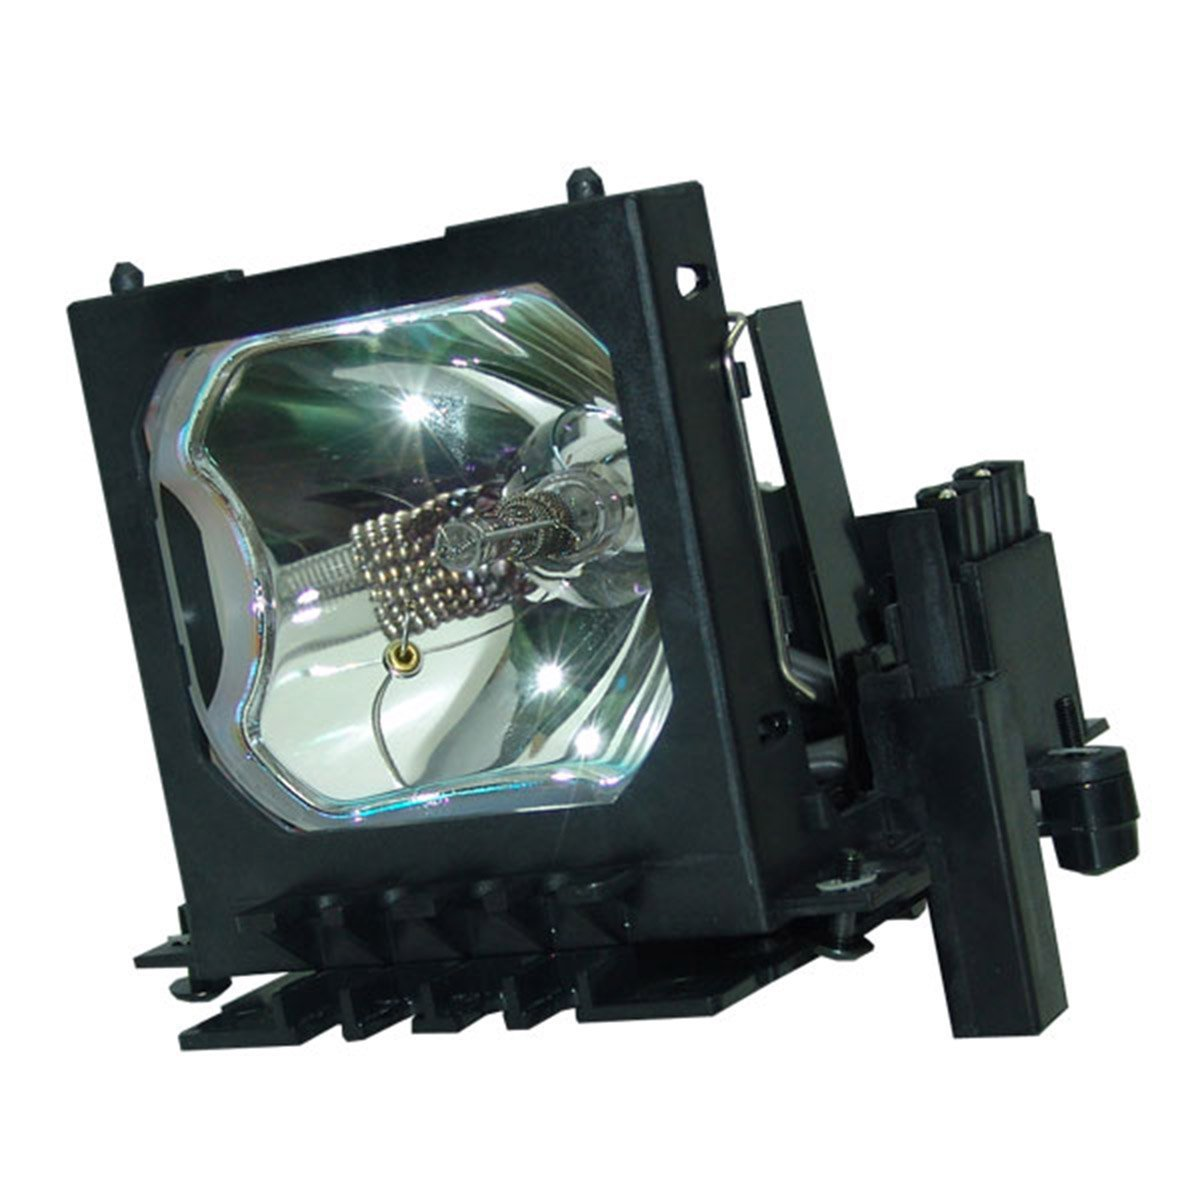 Projector Lamp Bulb DT00591 for HITACHI CP-X1200 CP-X1200W CP-X1200WA with housing dt00591 sp lamp 015 projector lamp with housing for hitachi cp x1200 lp840 pj1165 brand new tv projectors